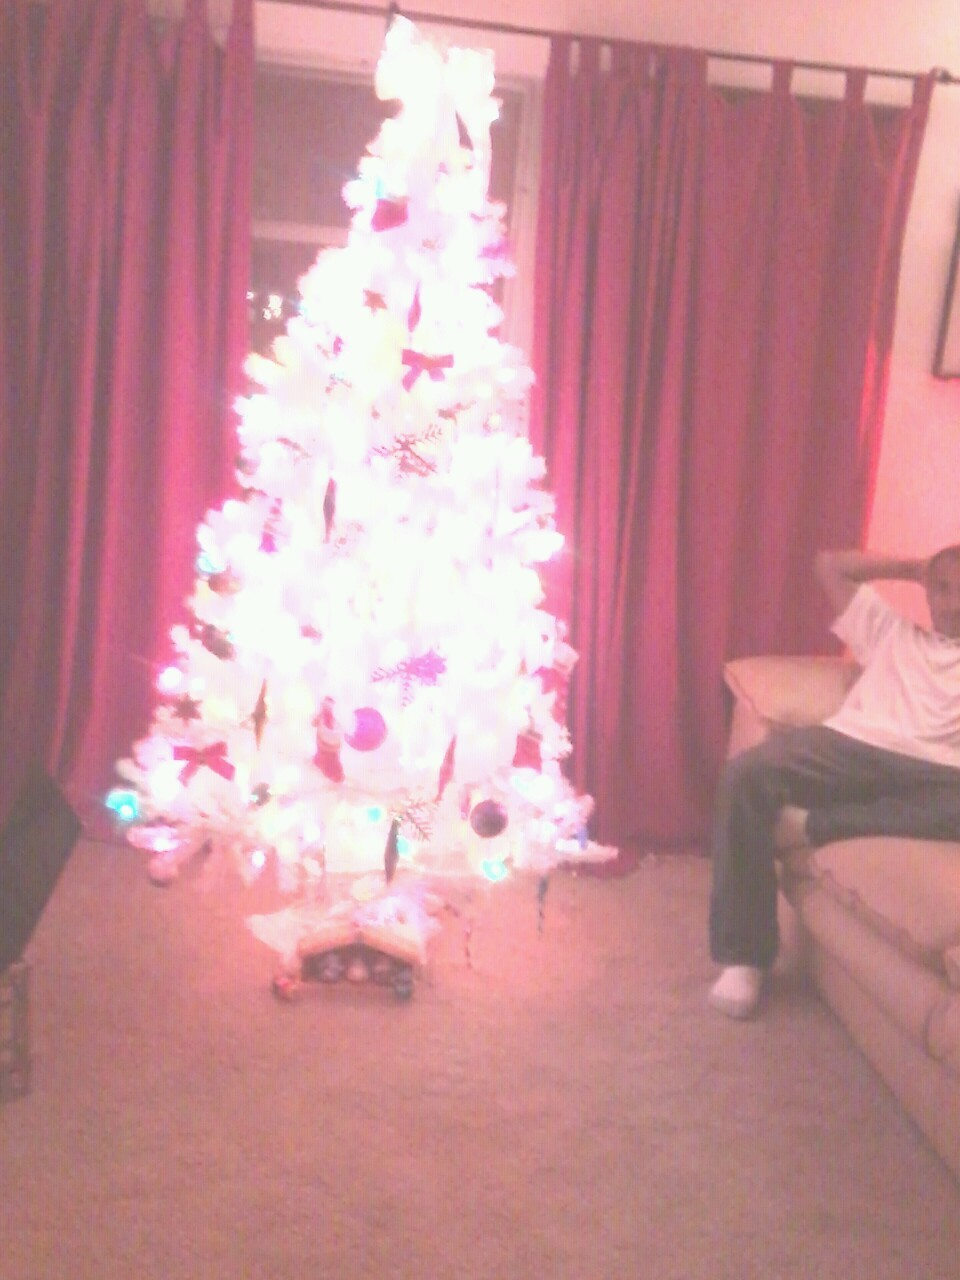 My aunts christmas tree and my boo